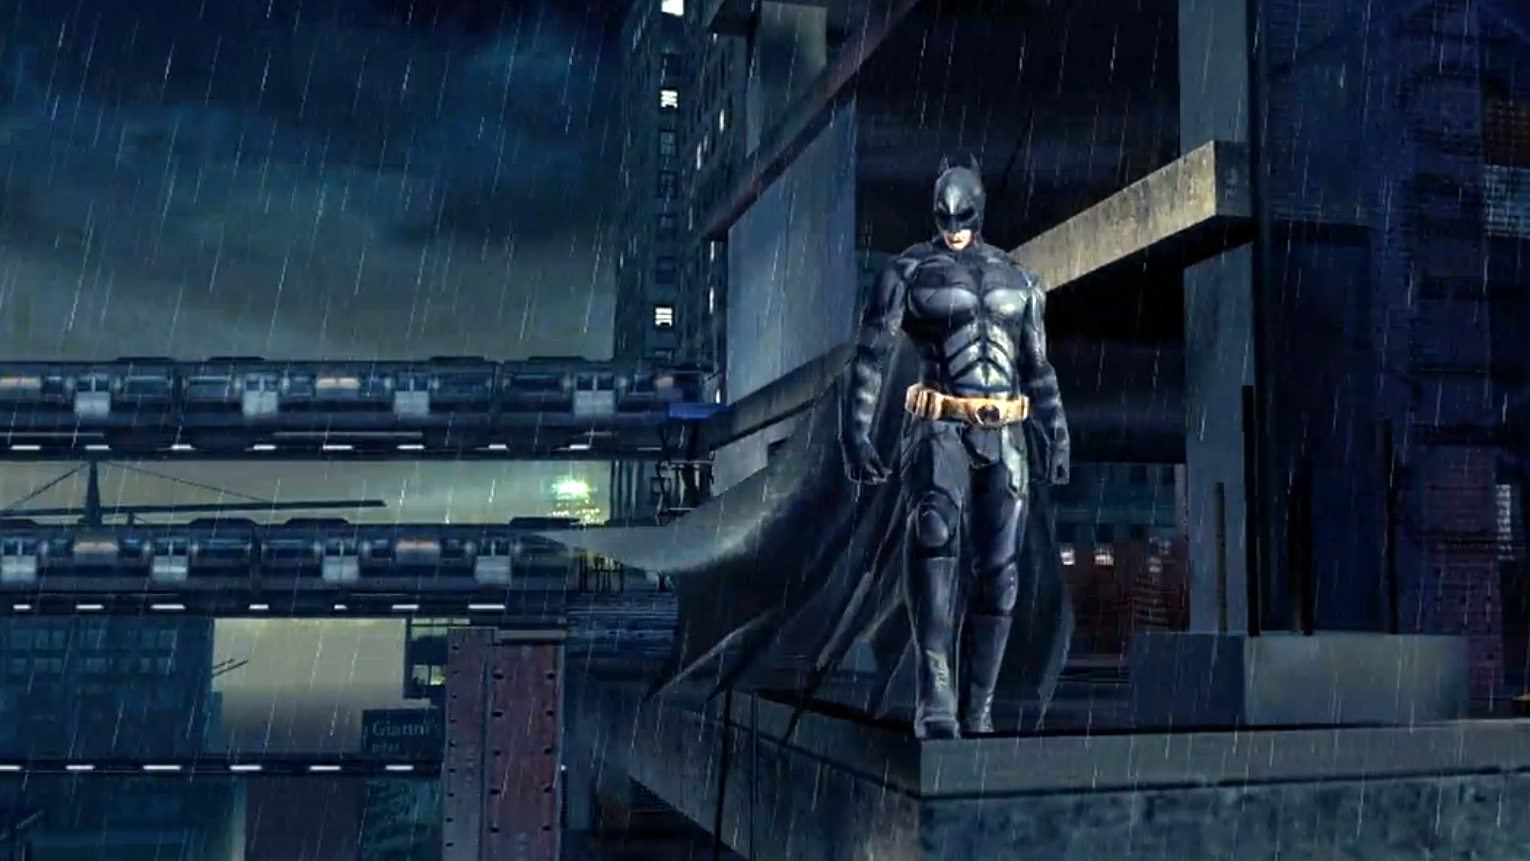 Gameloft's The Dark Knight Rises is an open world game, out at end of summer